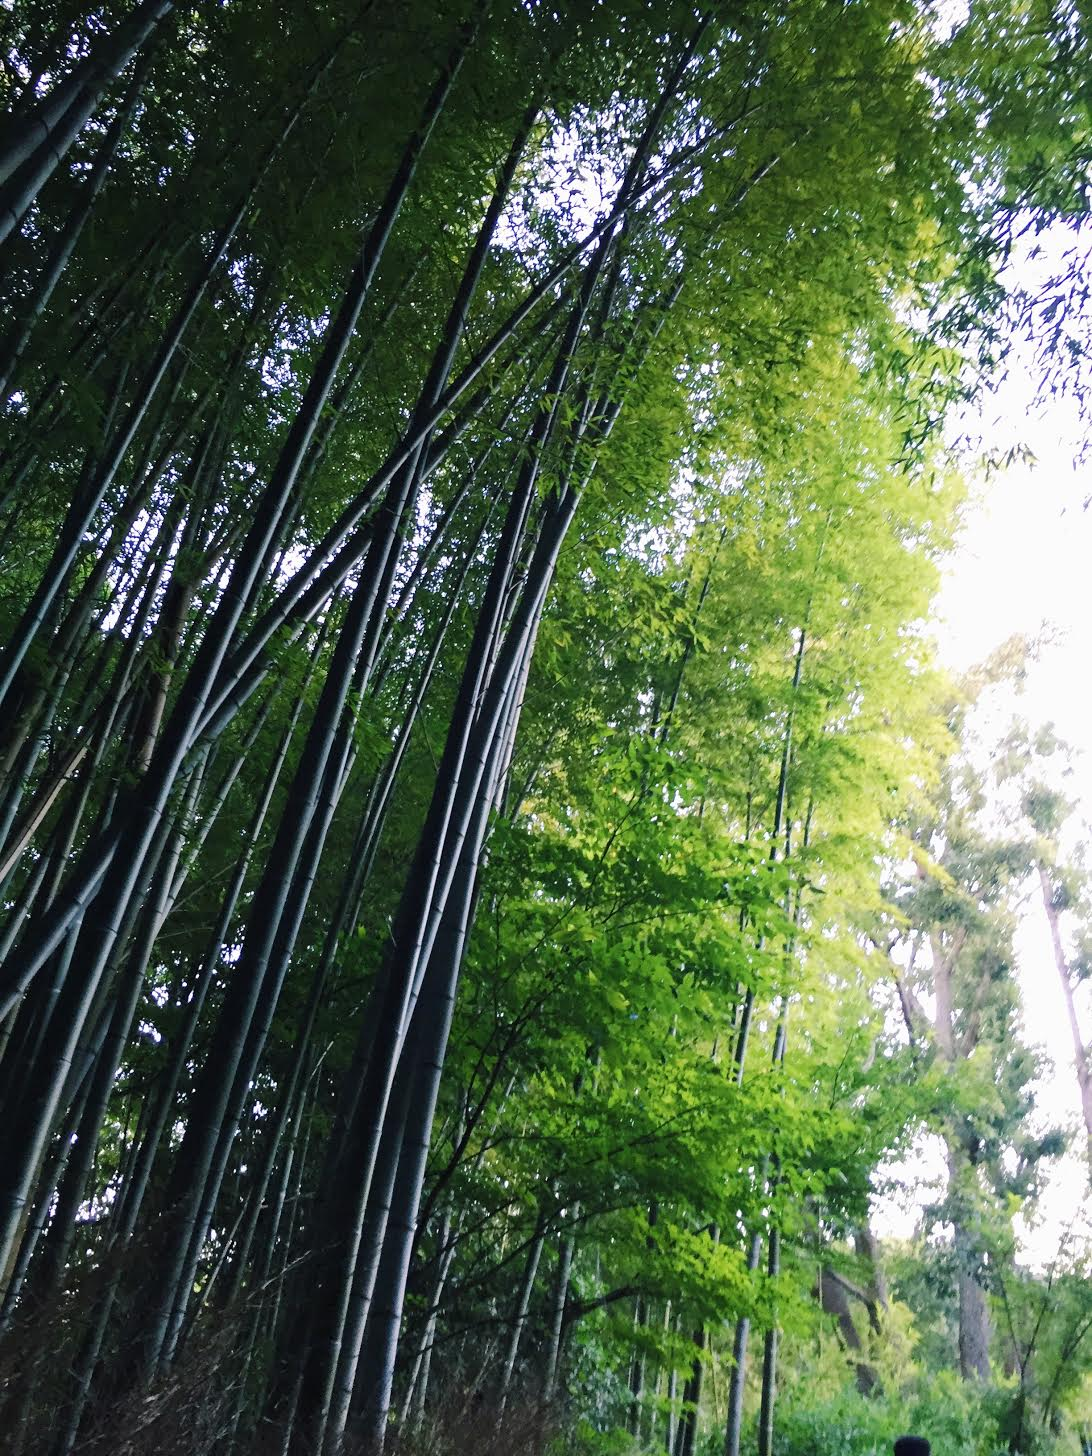 Muslim-travel-recommendations-Kyoto-tips-Bamboo-Forest.jpg